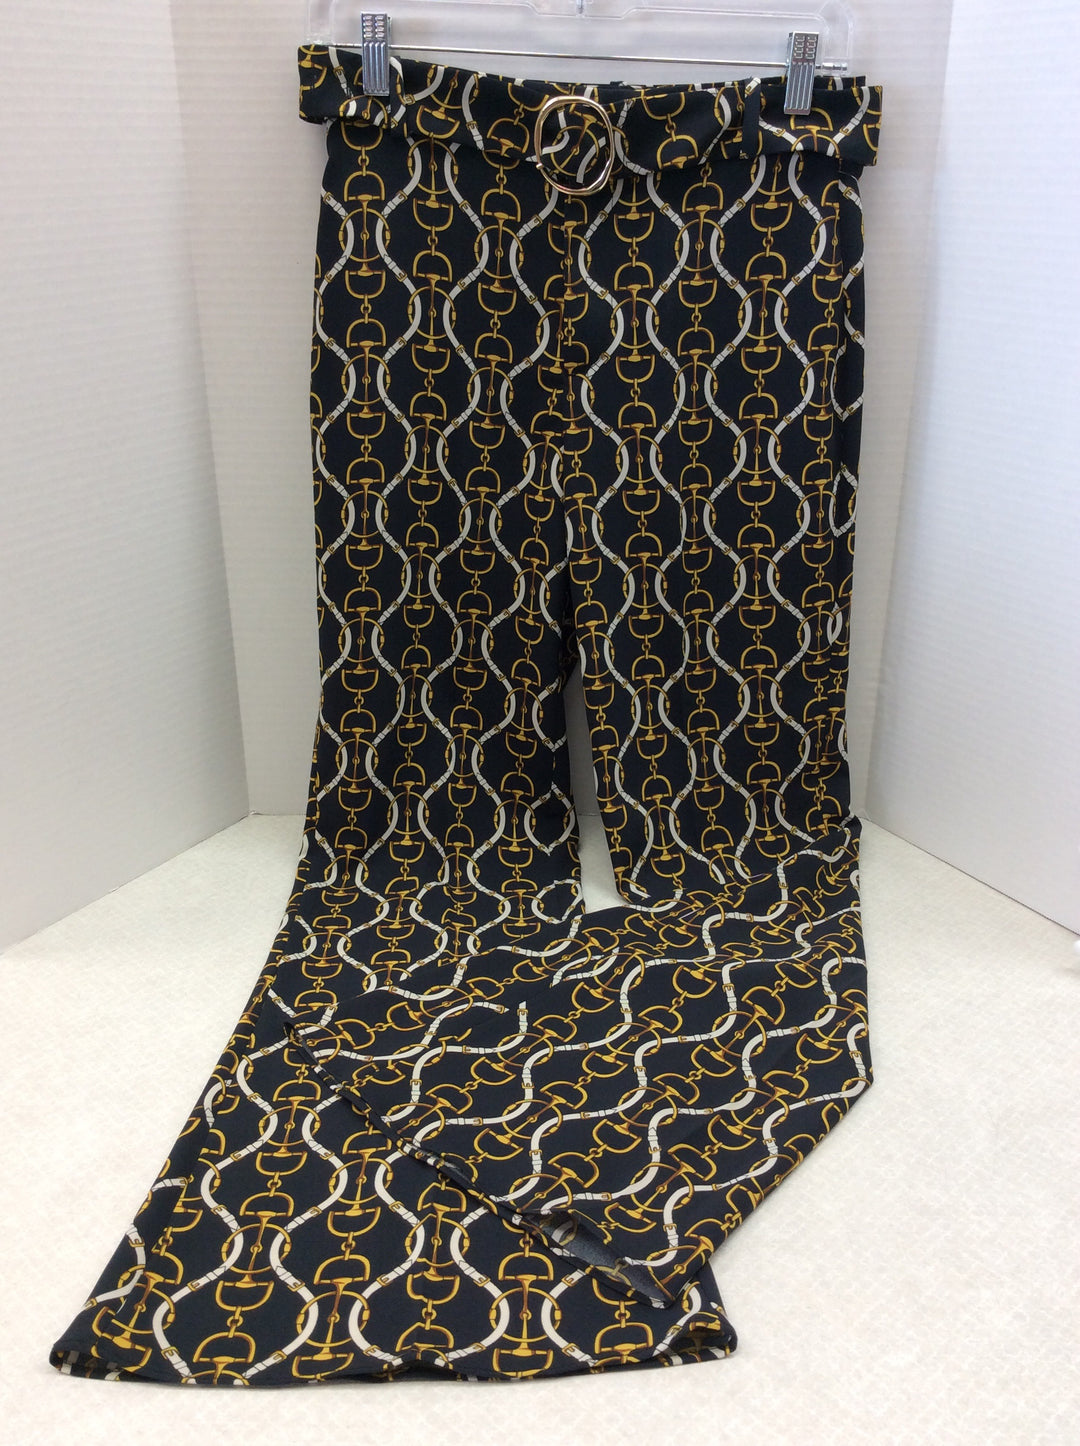 Primary Photo - BRAND: ZARA BASIC <BR>STYLE: PANTS <BR>COLOR: BLACK <BR>SIZE: XS <BR>SKU: 133-13341-41436<BR>WHAT A FUN MODERN TWIST ON A CLASSIC EQUESTRIAN PRINT PANT! SO ON TREND!